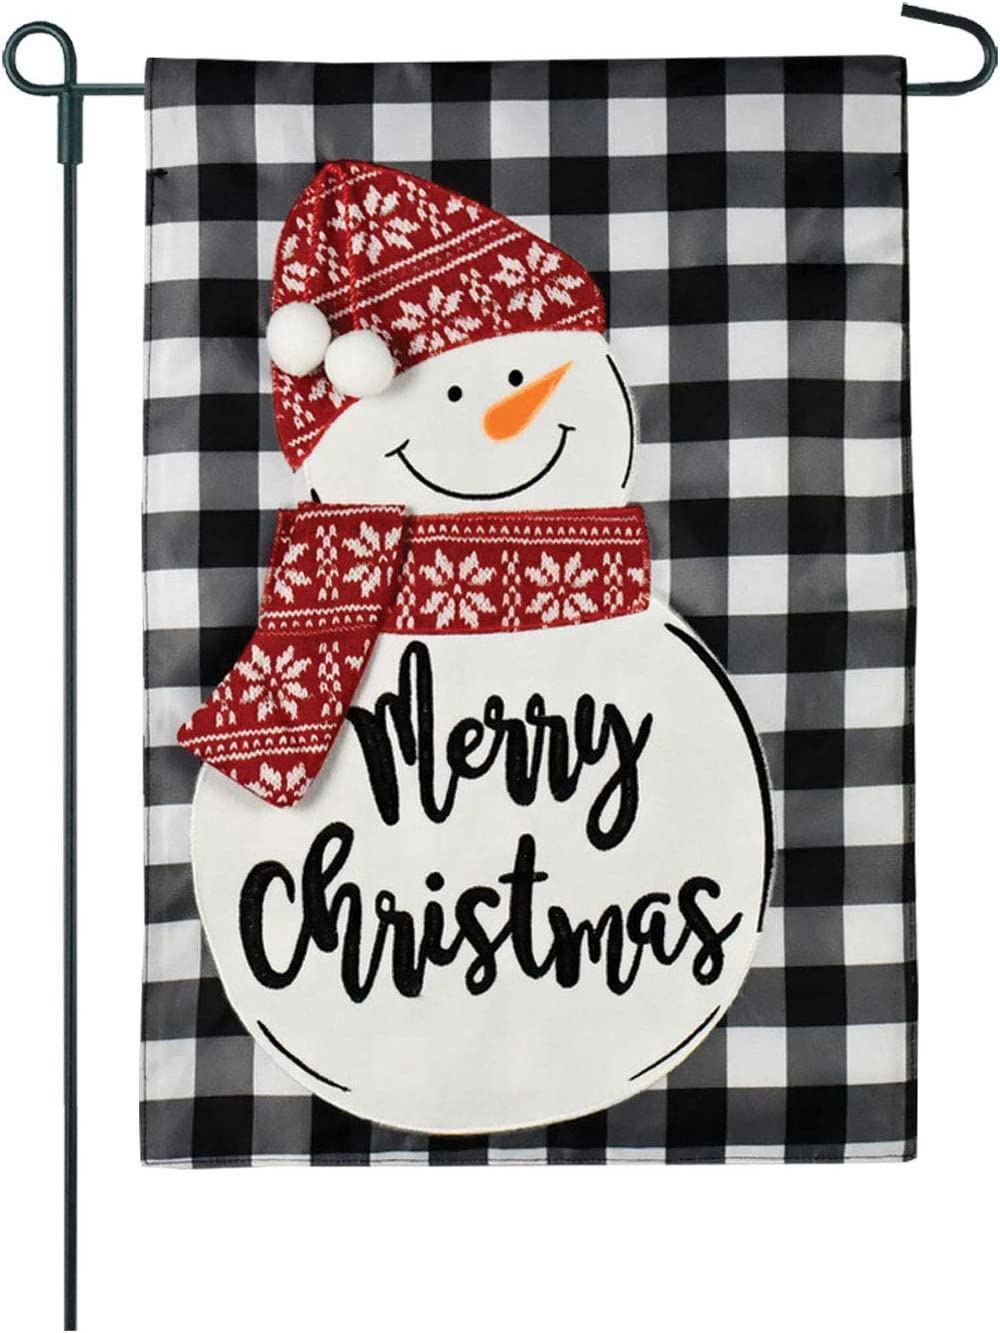 Twisted Anchor Trading Co Merry Christmas Garden Flag - Snowman Garden Flag Buffalo Plaid Burlap Holiday Home Garden Flag 12.5 x 18